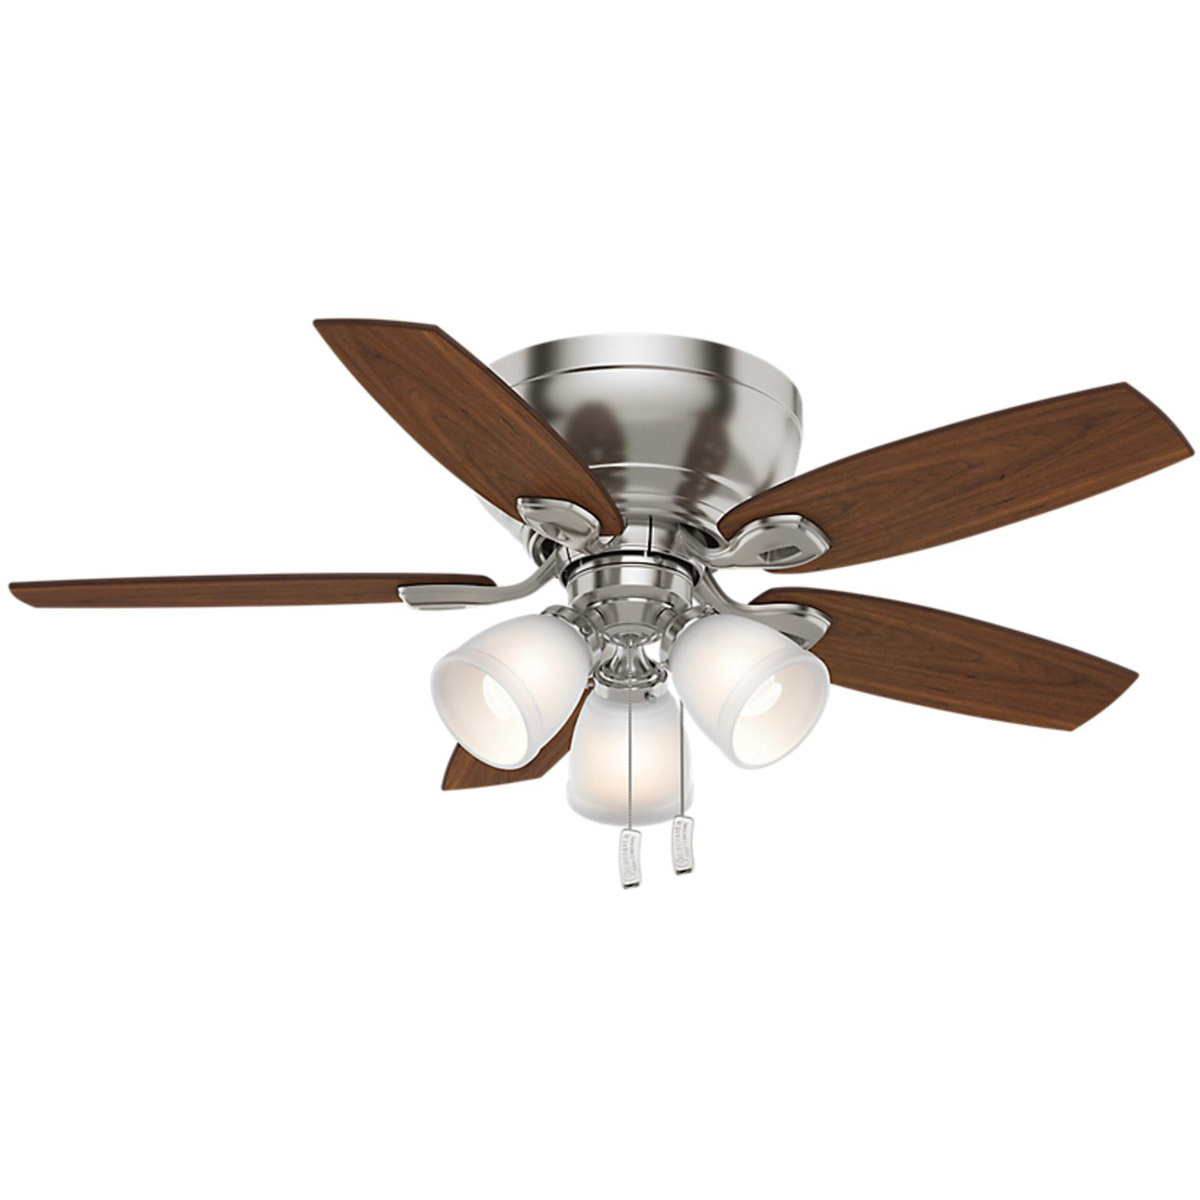 53187 durant indoor ceiling fan brushed nickel